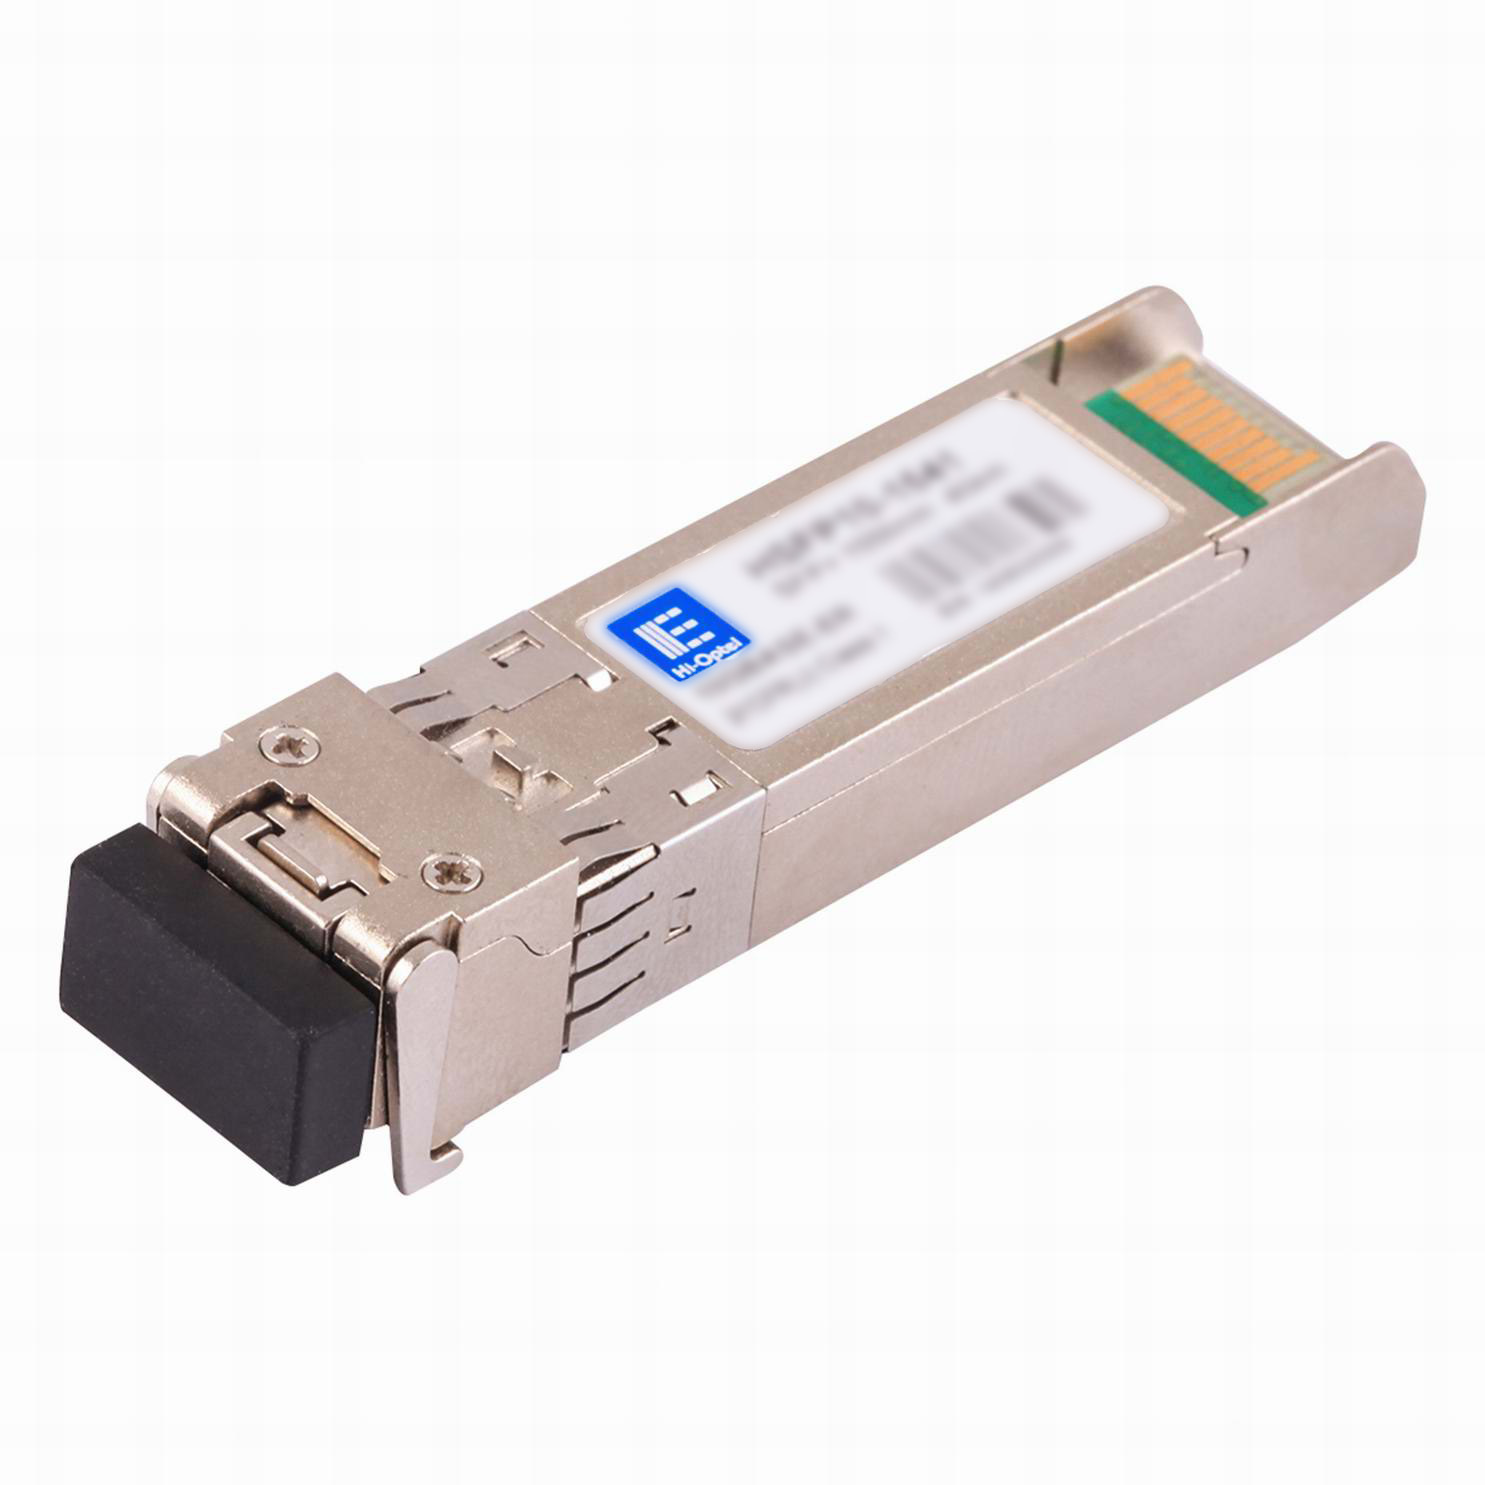 10G SFP+ 1310nm 40km Duplex LC Optical Transceiver